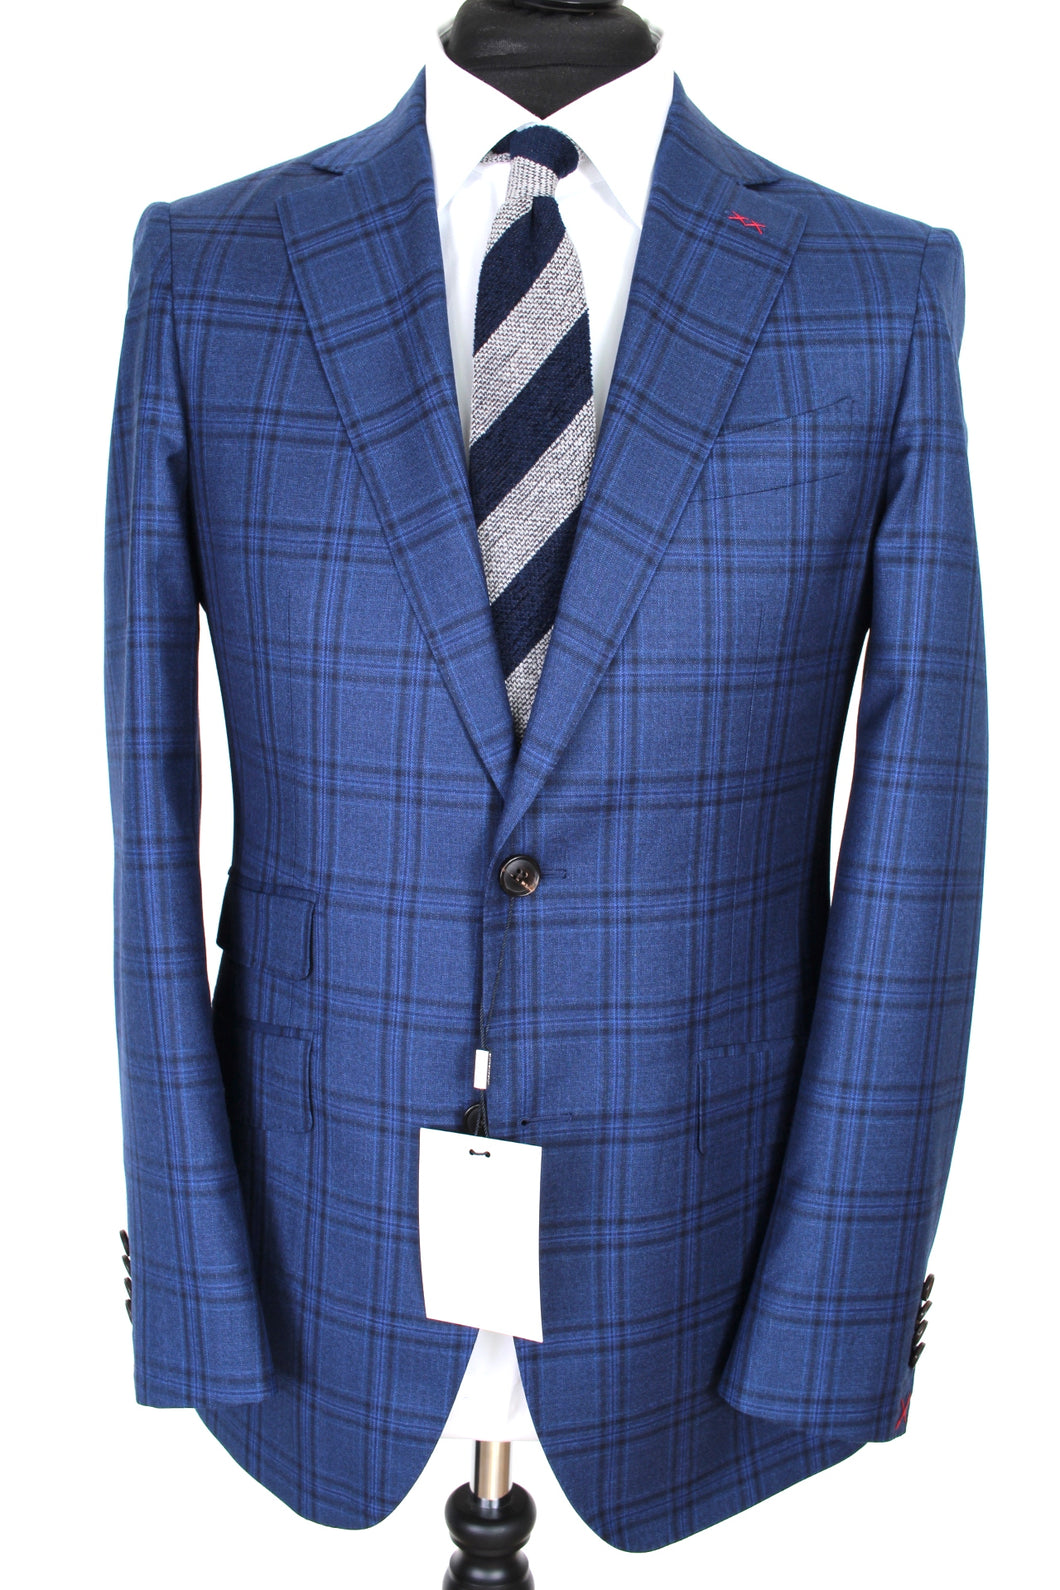 NWT Suitsupply La Spalla Blue Check 100% Wool Suit - Size 38R